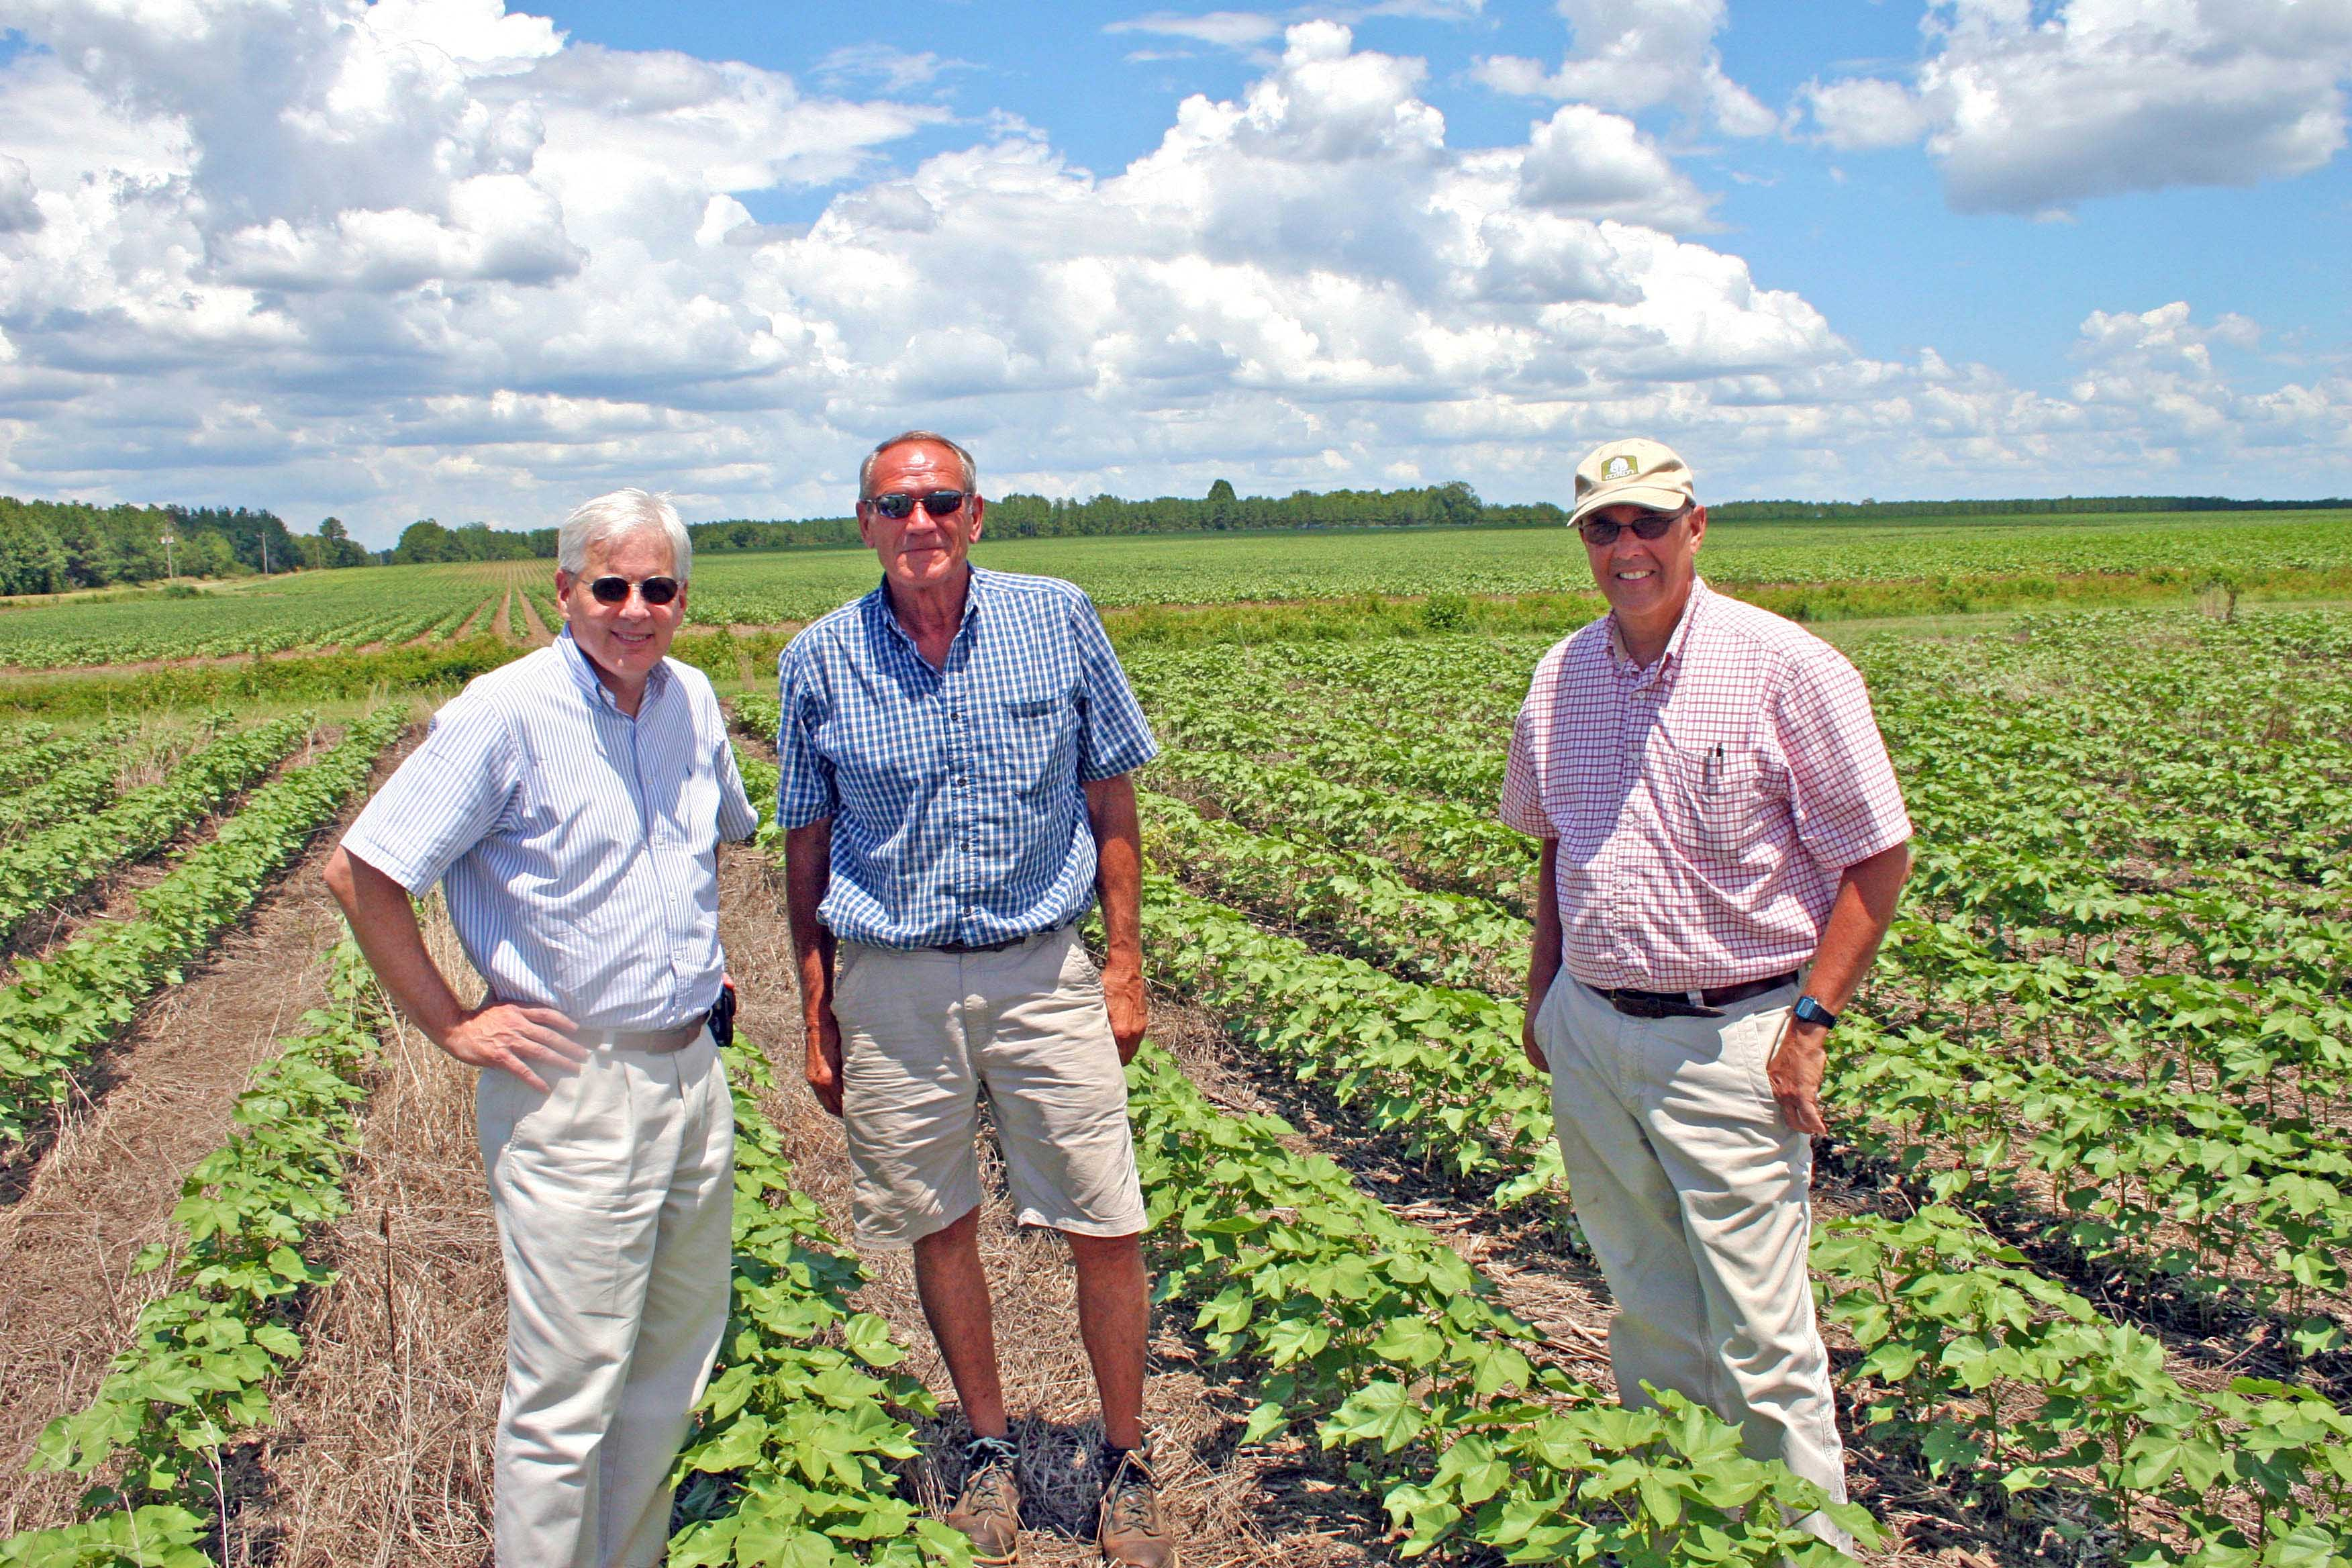 Scott Angle, dean of the UGA College of Agriculture and Environmental Sciences, Barry Martin, and Ronnie Barentine, County Extension Coordinator for Pulaski County. Angle and Barentine visited Martin's farm near Hawkinsville after Martin was named the 2012 Swisher Sweets/Sunbelt Expo Farmer of the Year.